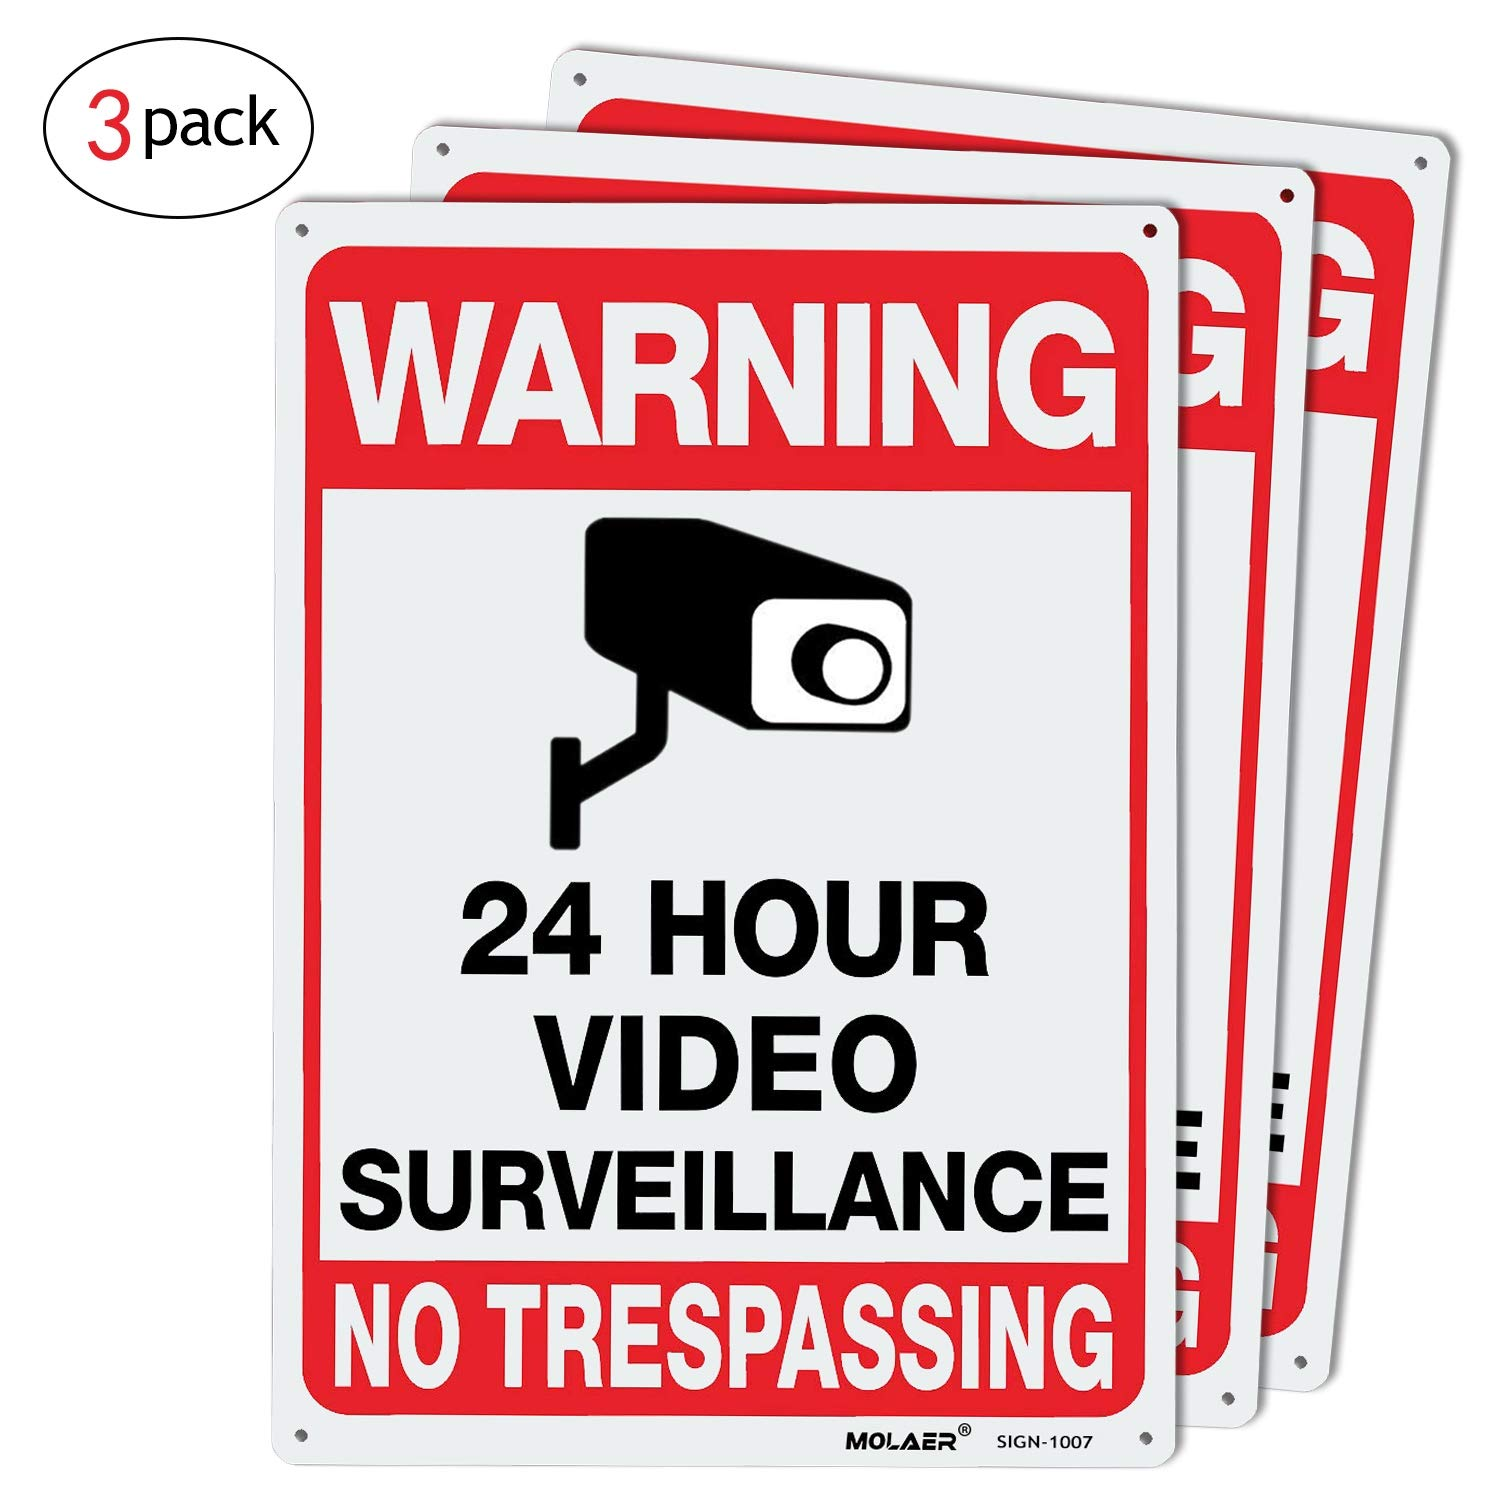 Video Surveillance Sign, MOLAER 3-Pack No Trespassing Signs, 10'' x 7'' UV Printed Waterproof Reflective 40 Aluminum Material, for Outdoor Security Camera Warning